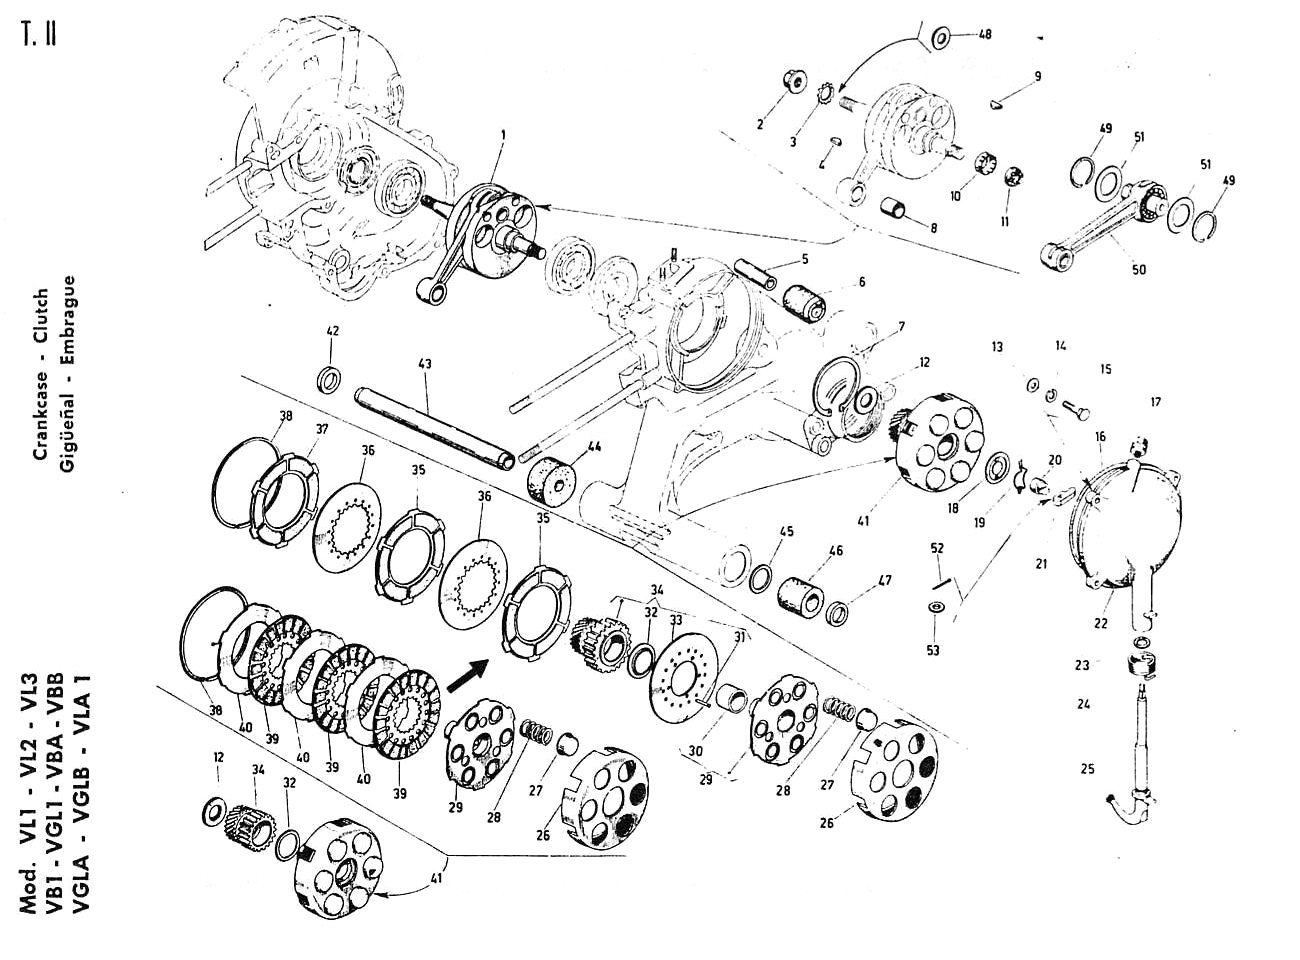 Wiring Diagram As Well Citroen C2 Wiring Diagram On 93 Camry Stereo